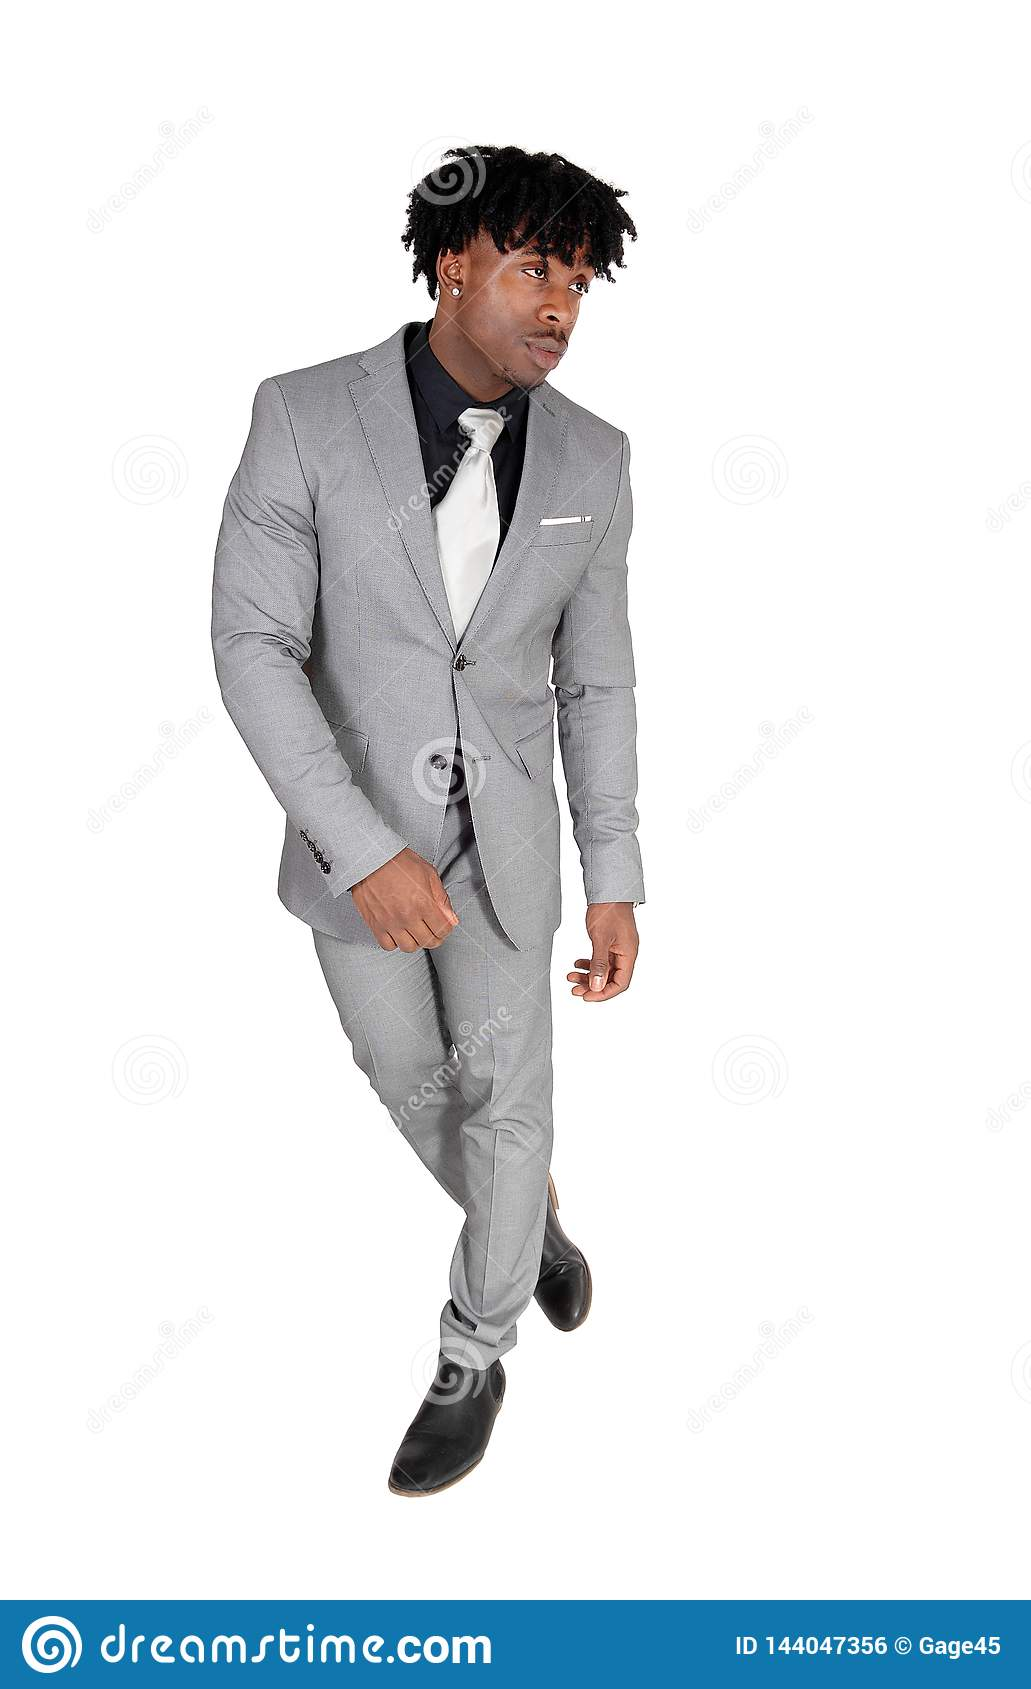 Dancing black man in a gray suit with fussy black hair